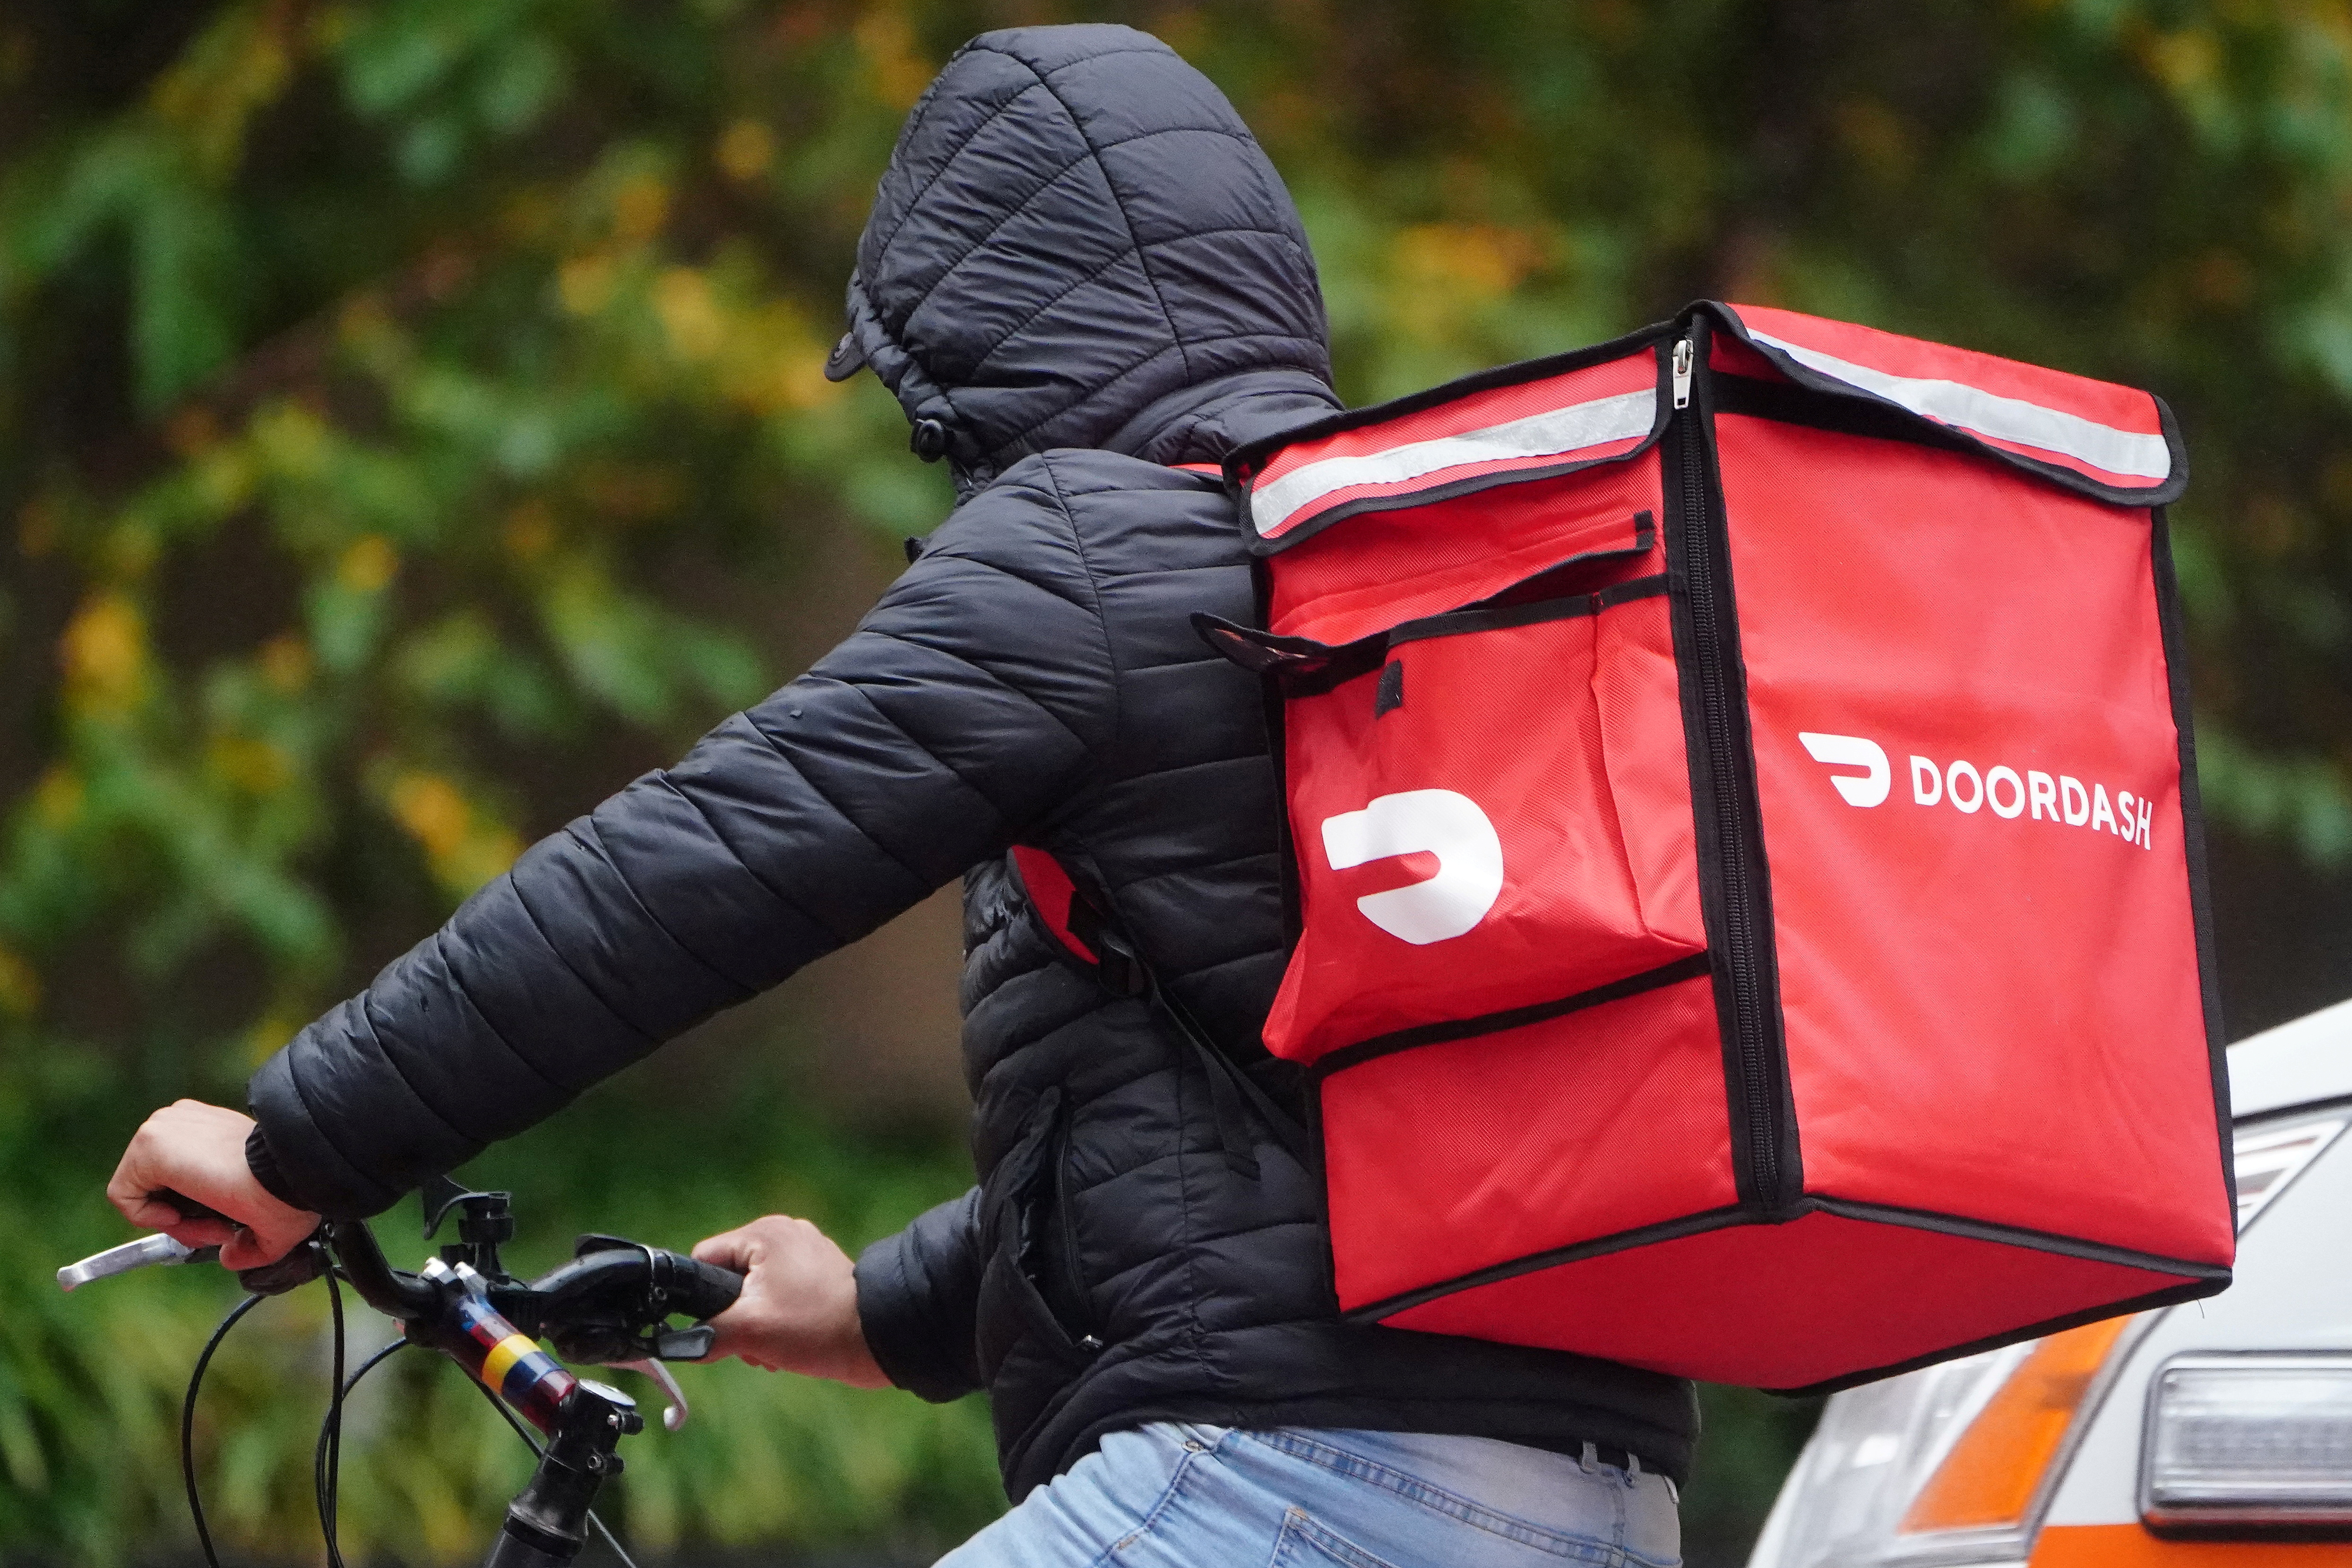 A delivery person for Doordash rides his bike in the rain in the Manhattan borough of New York City